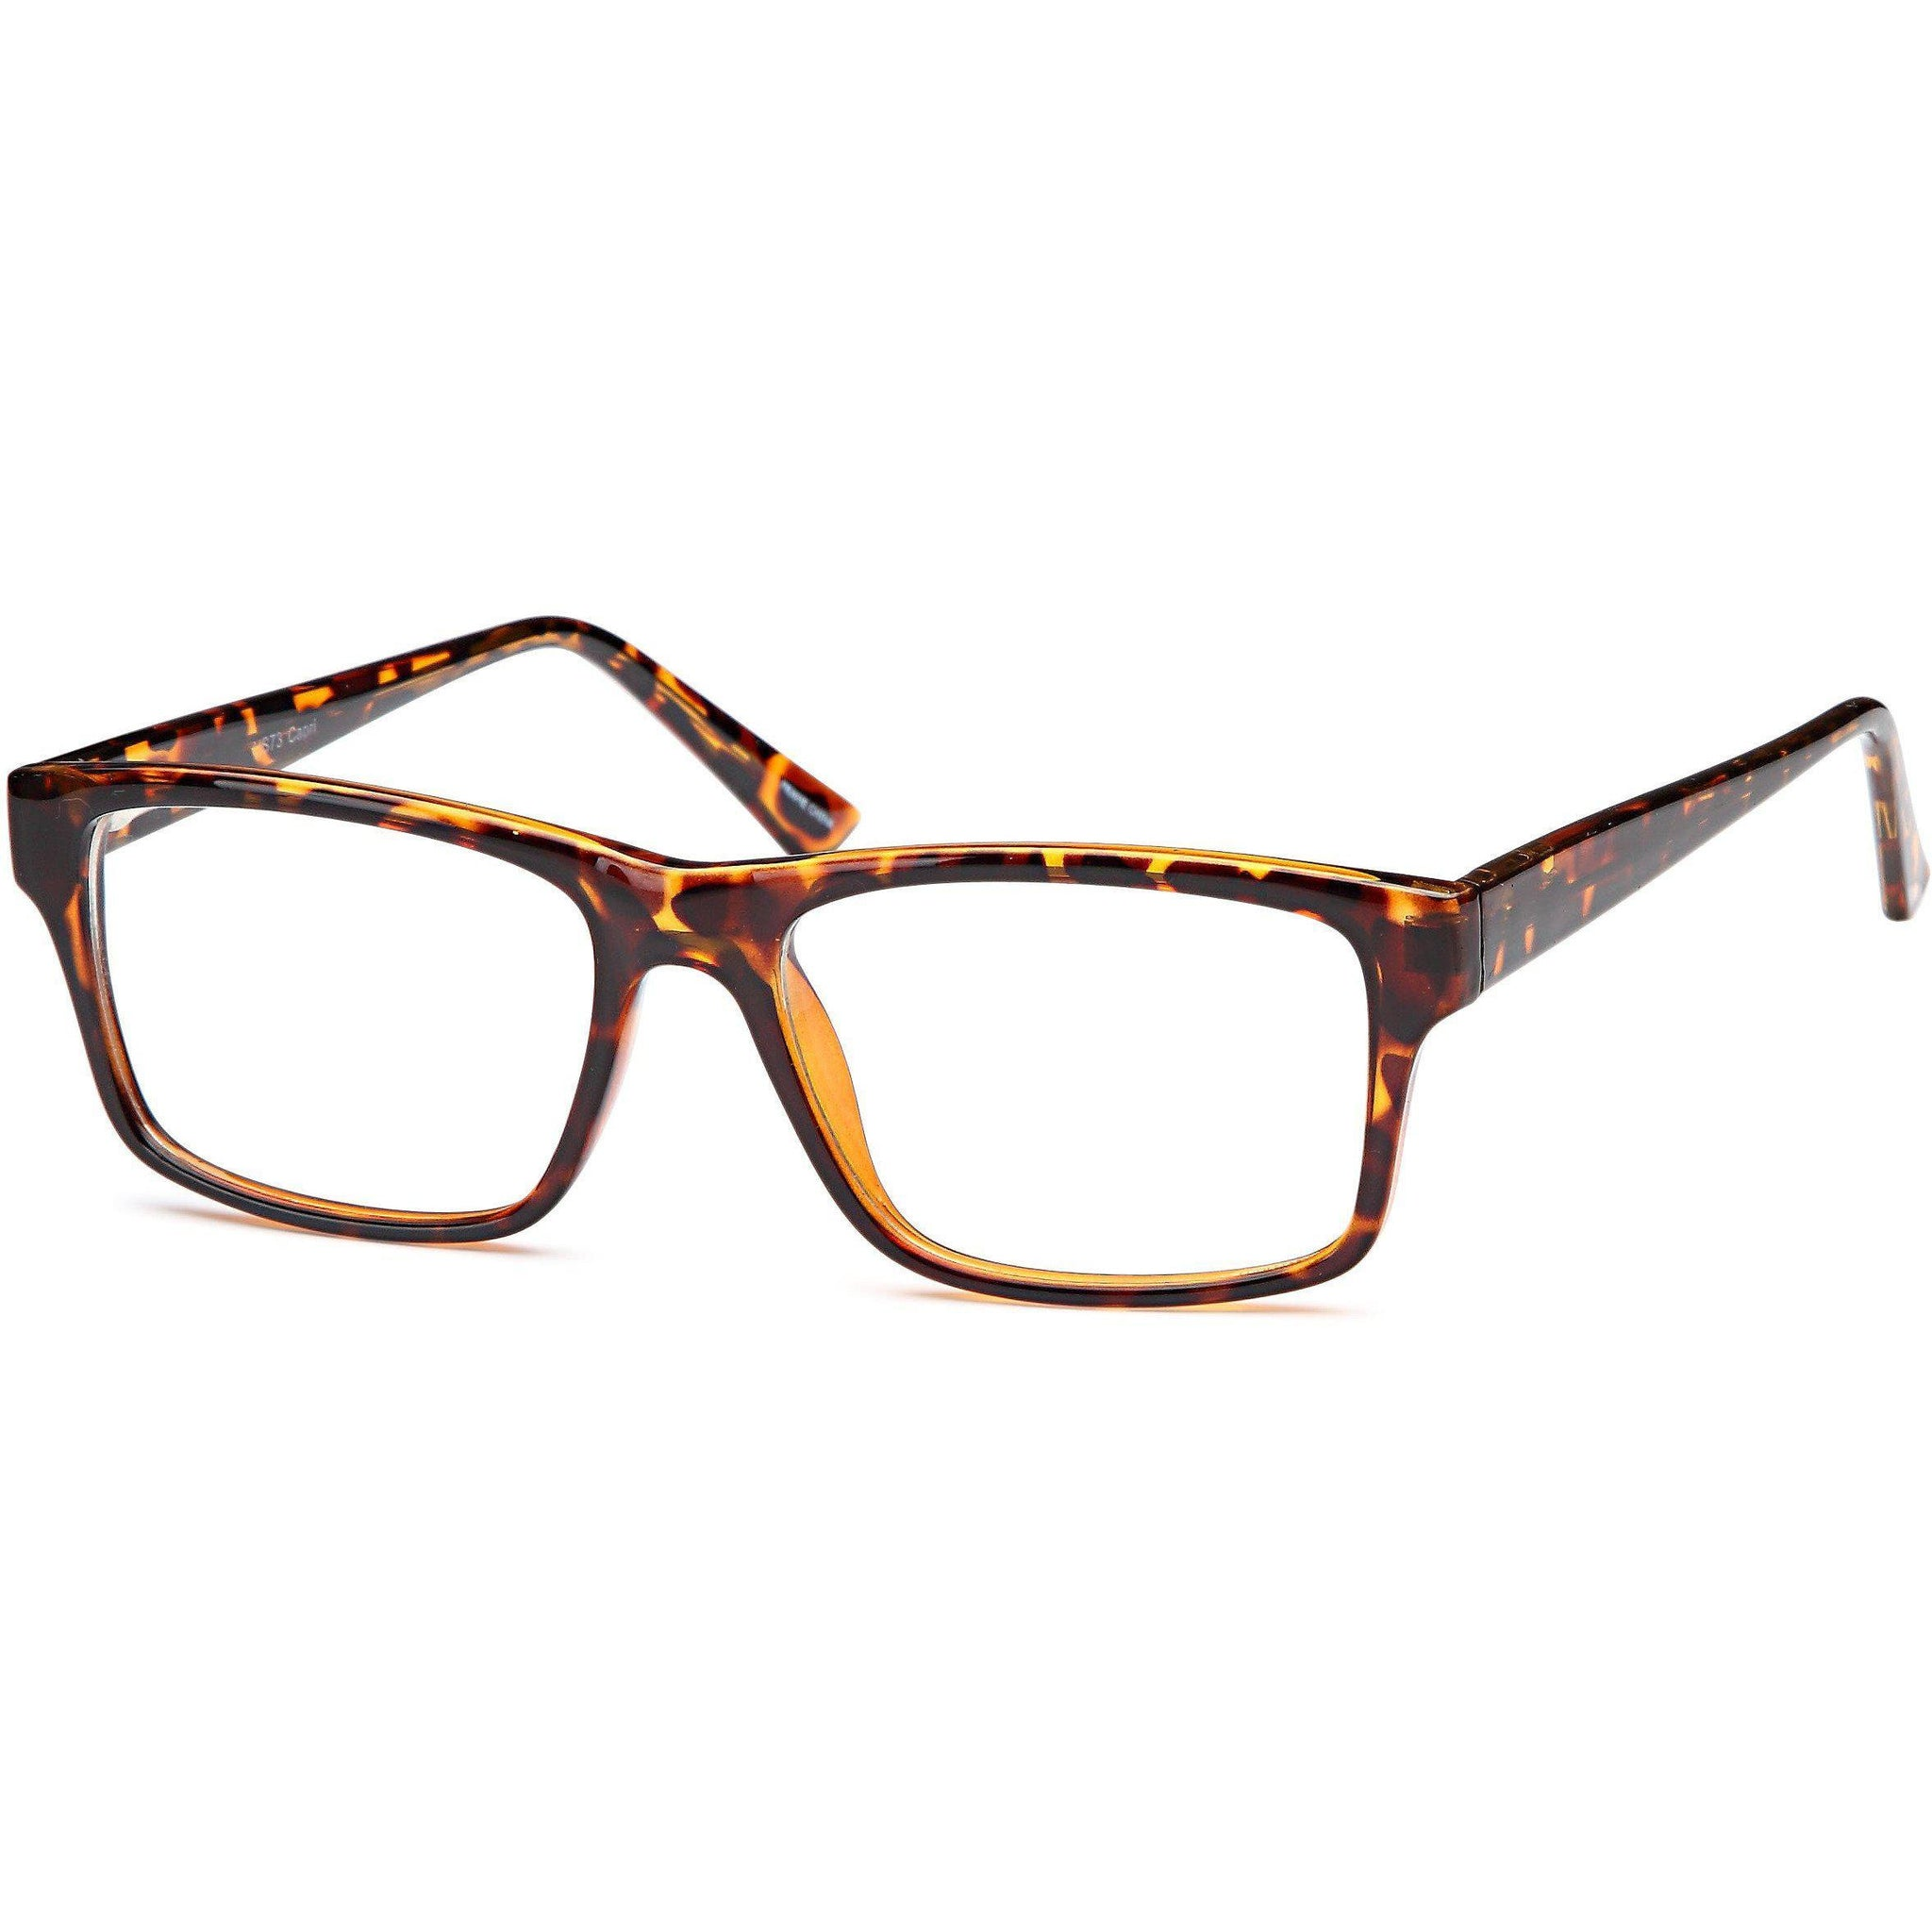 4U Prescription Glasses US 73 Optical Eyeglasses Frame - timetoshade